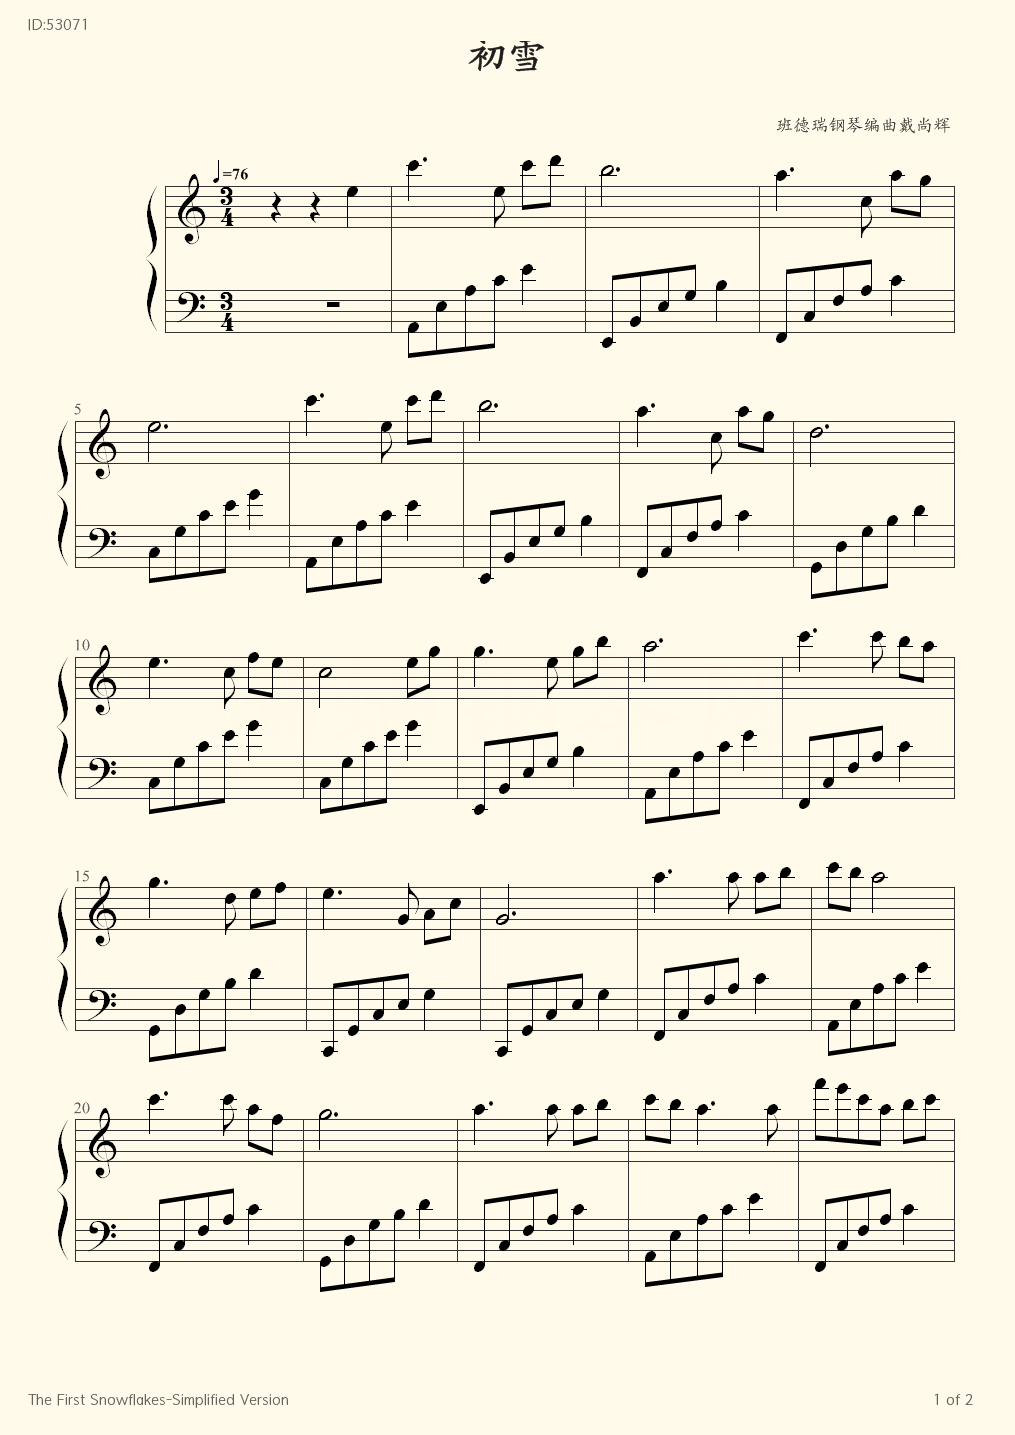 The First Snowflakes Simplified Version - Bandari - first page